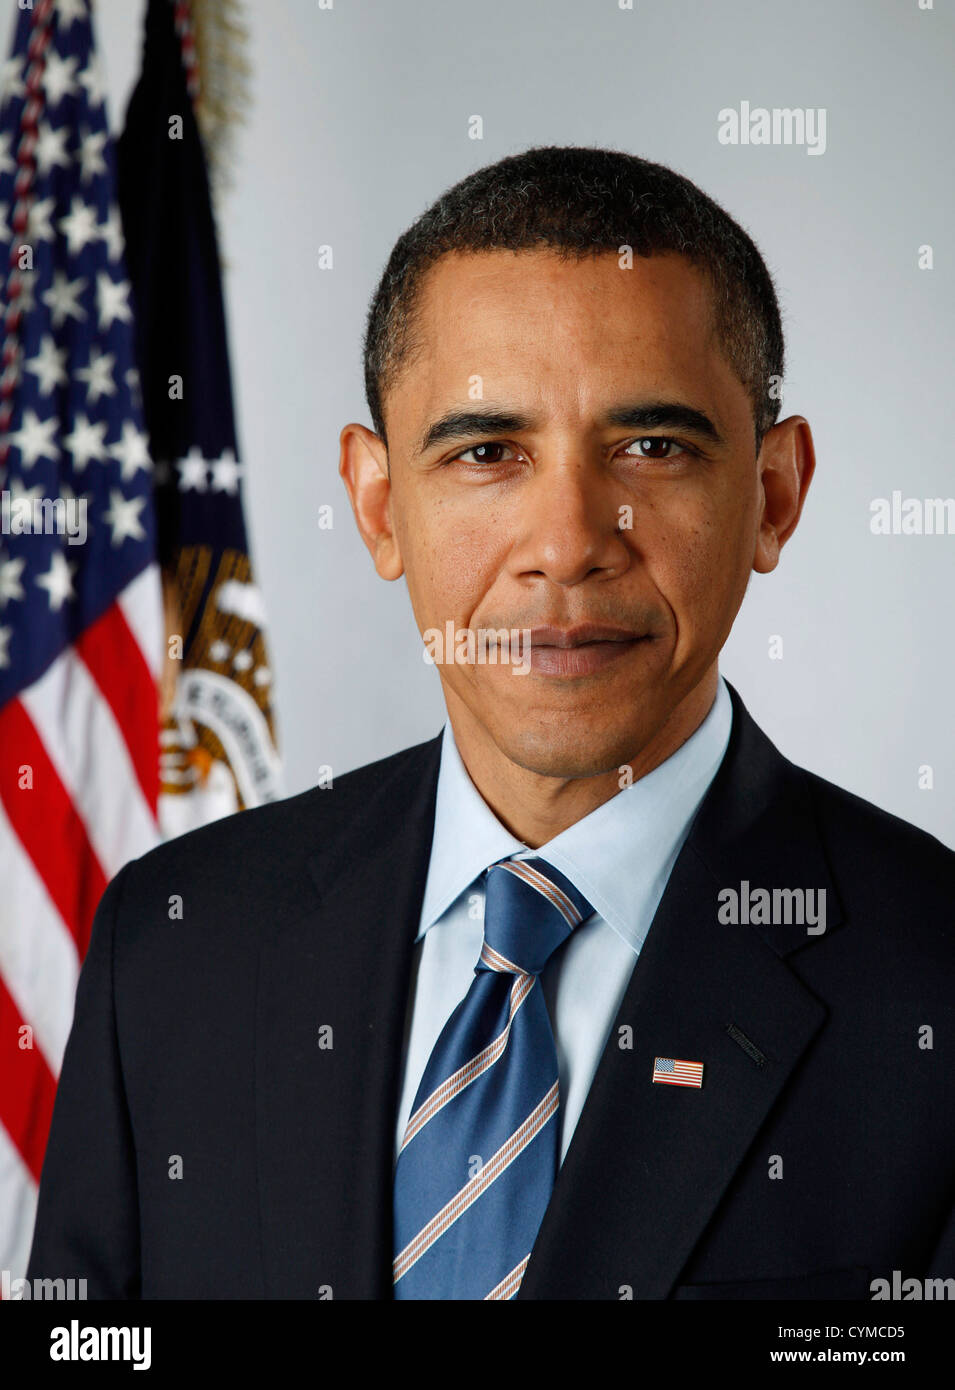 BARACK OBAMA  US President in 2009 - Stock Image